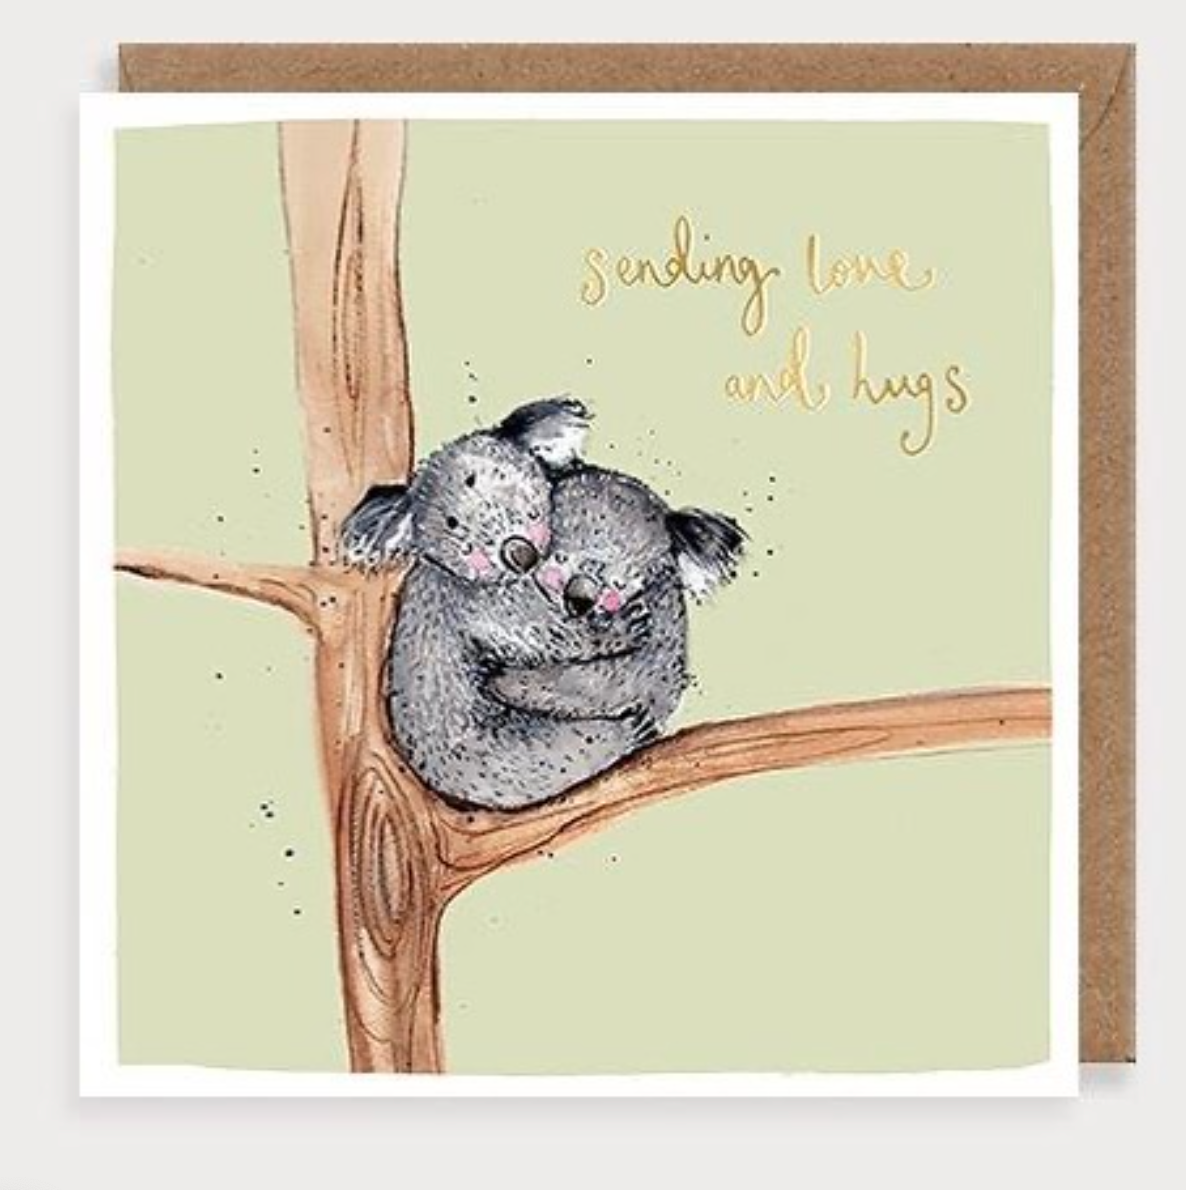 Above: A Louise Mulgrew card, one of the brands that McMillan distributes.